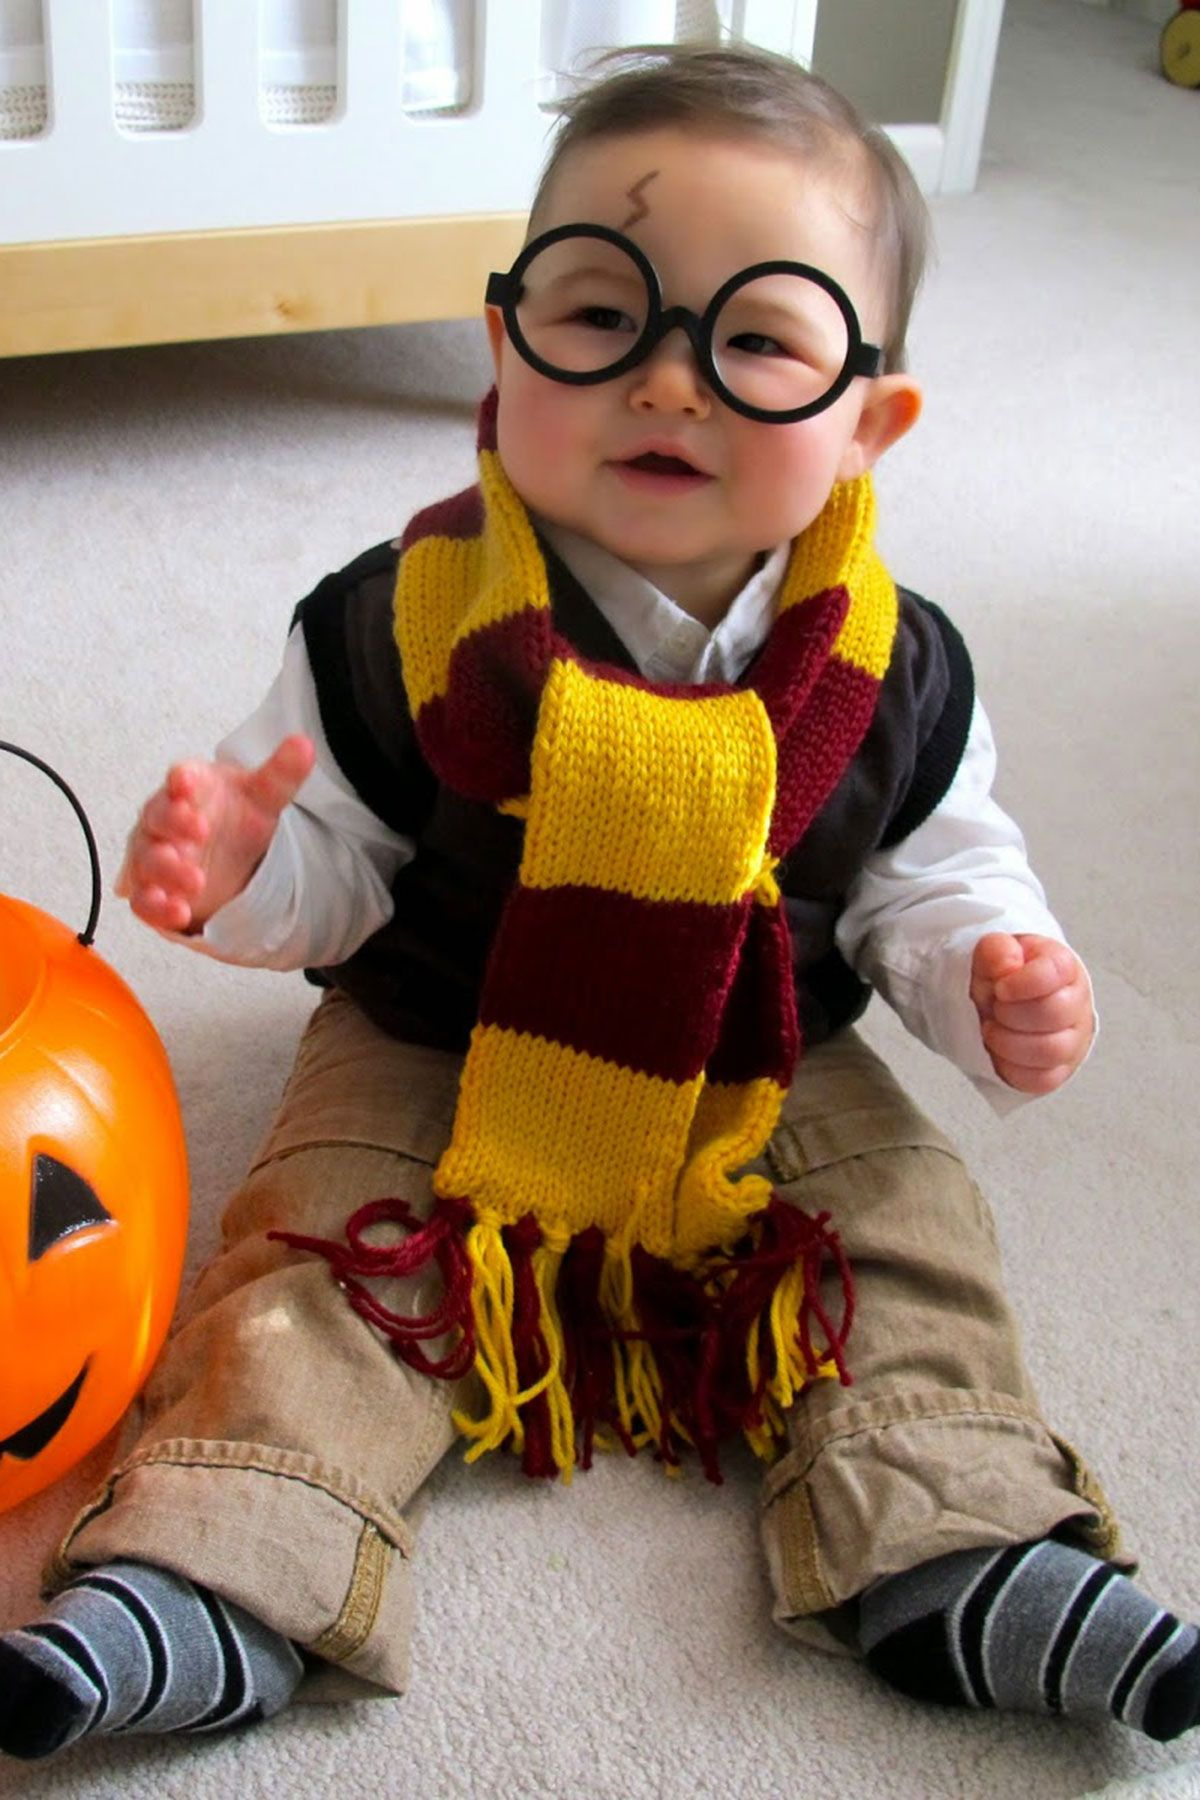 Do you ever feel that halloween creeps up on you or that you're never actually ready when the day arrives? 85 Homemade Halloween Costumes For Kids Easy Diy Kids Halloween Costume Ideas 2021